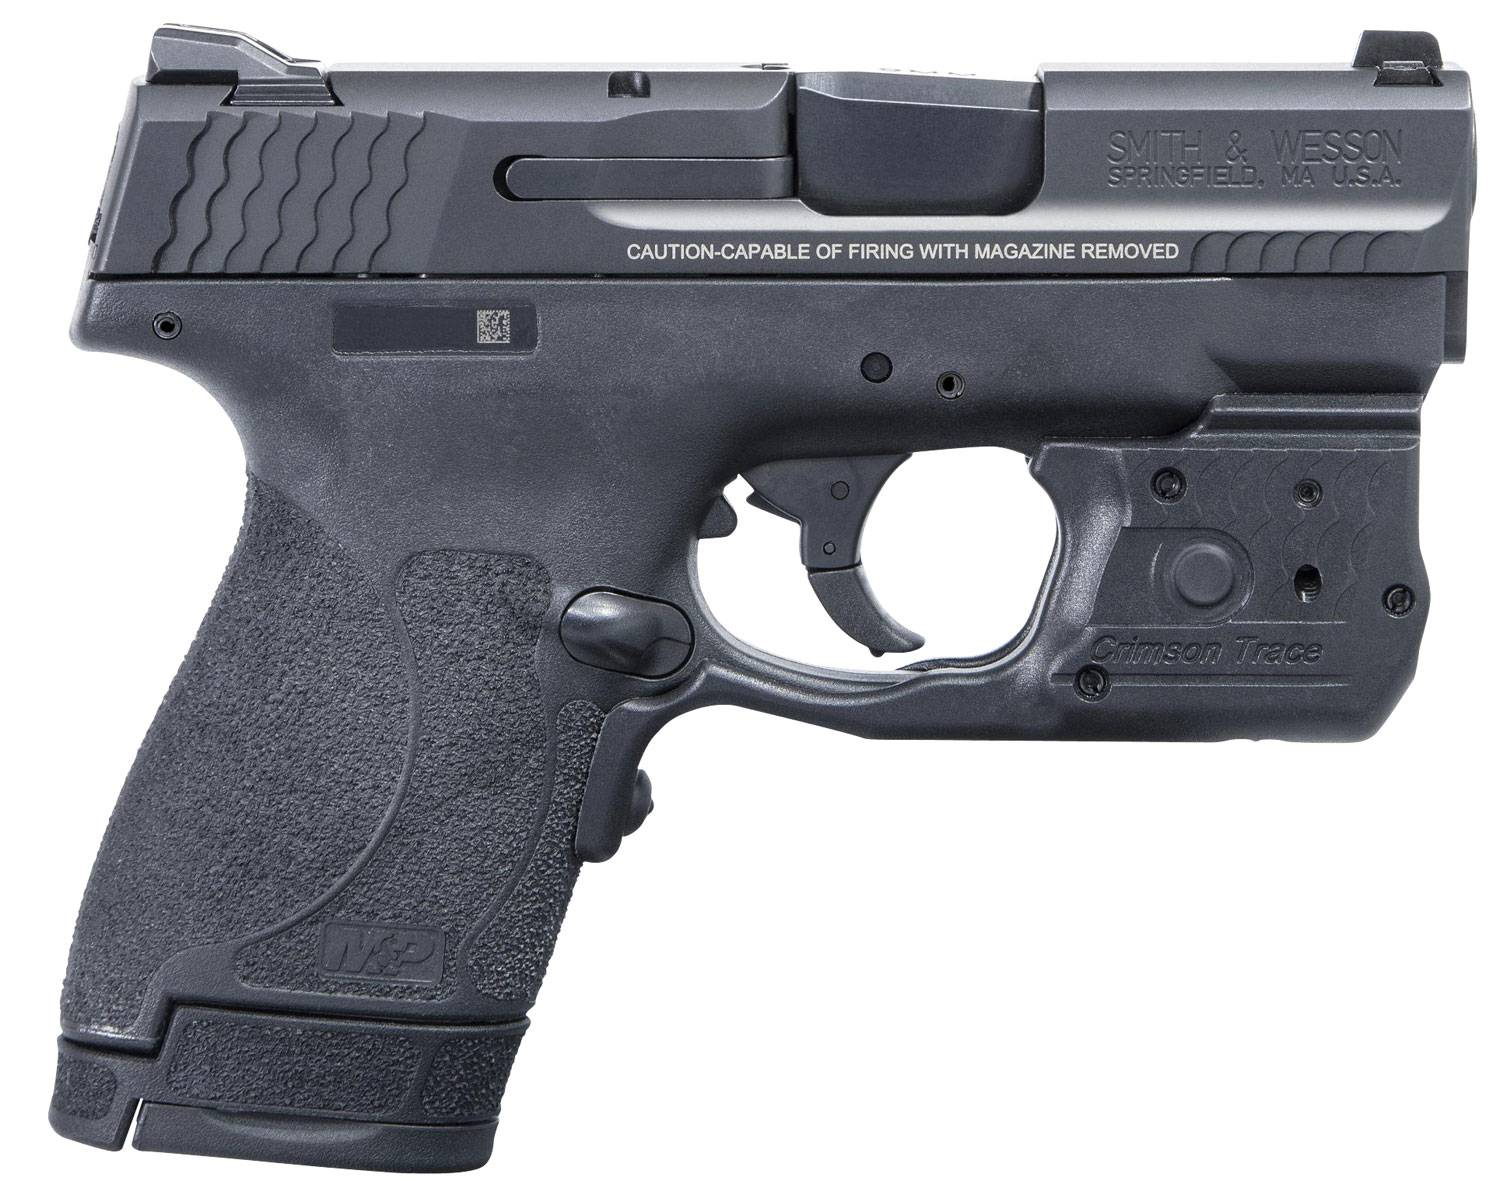 Smith & Wesson 11817 M&P 40 Shield M2.0 Laserguard Pro Double 40 Smith & Wesson (S&W) 3.1